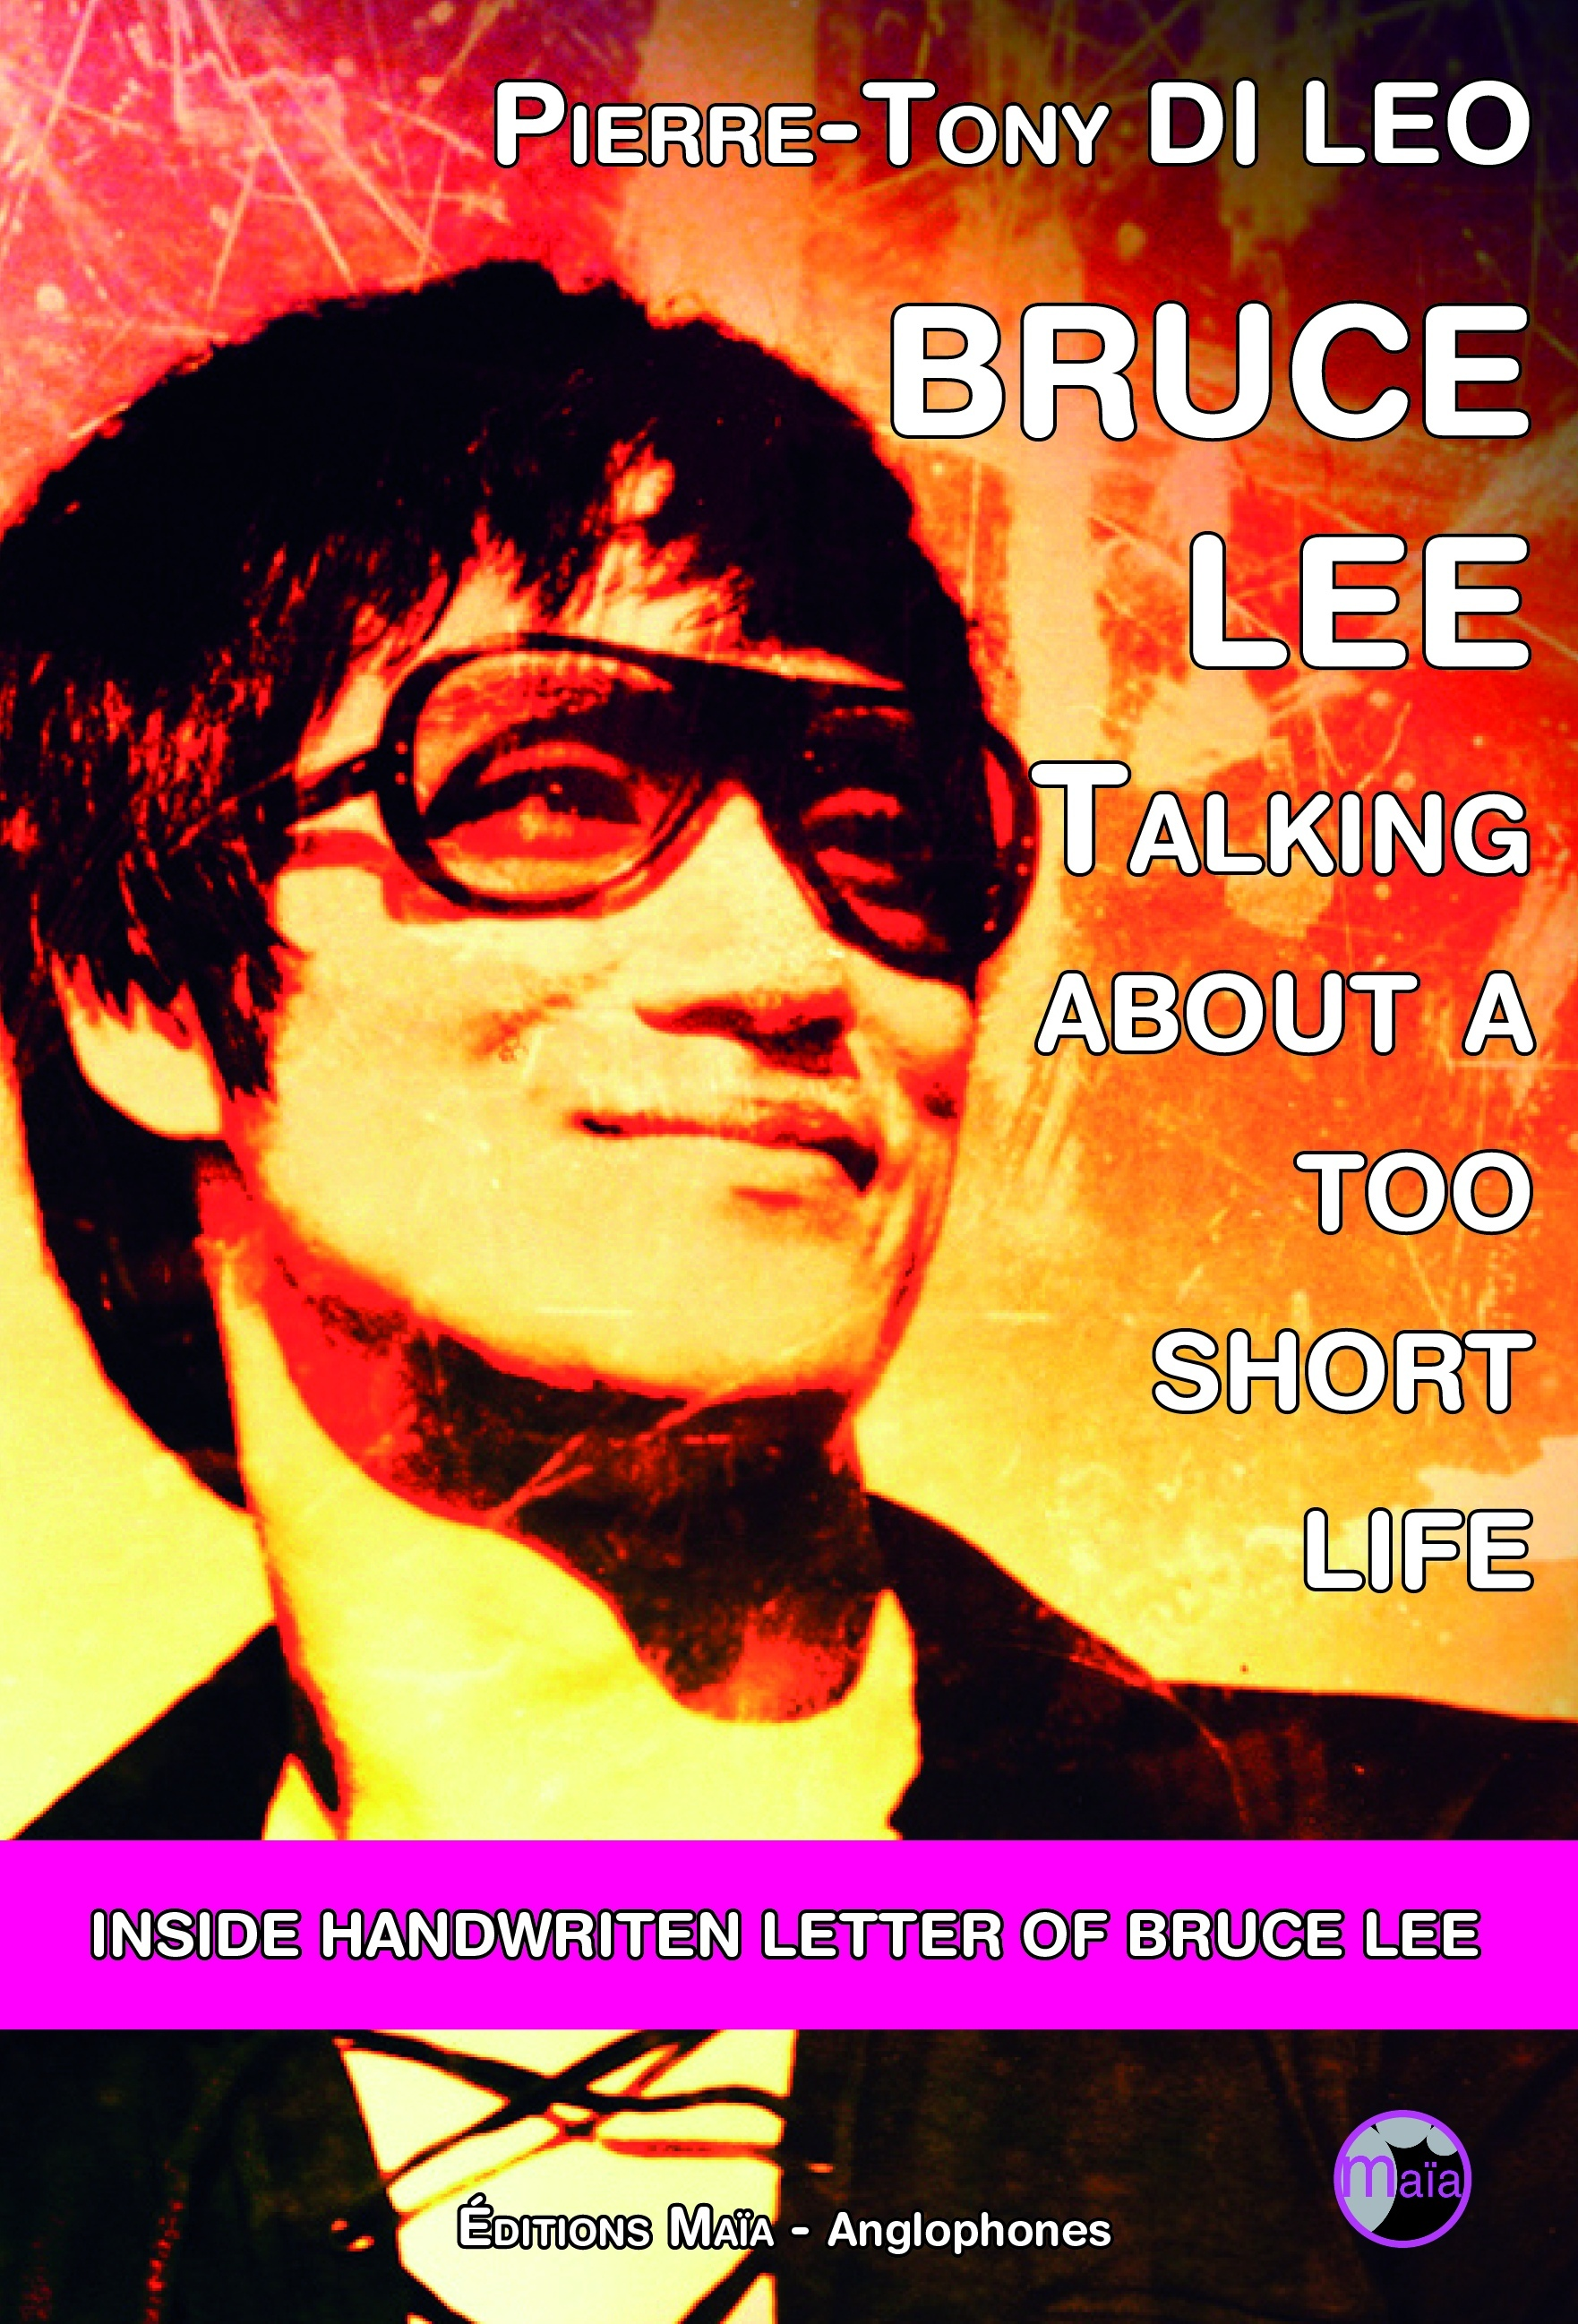 BRUCE LEE - TALKING ABOUT A TOO SHORT LIFE